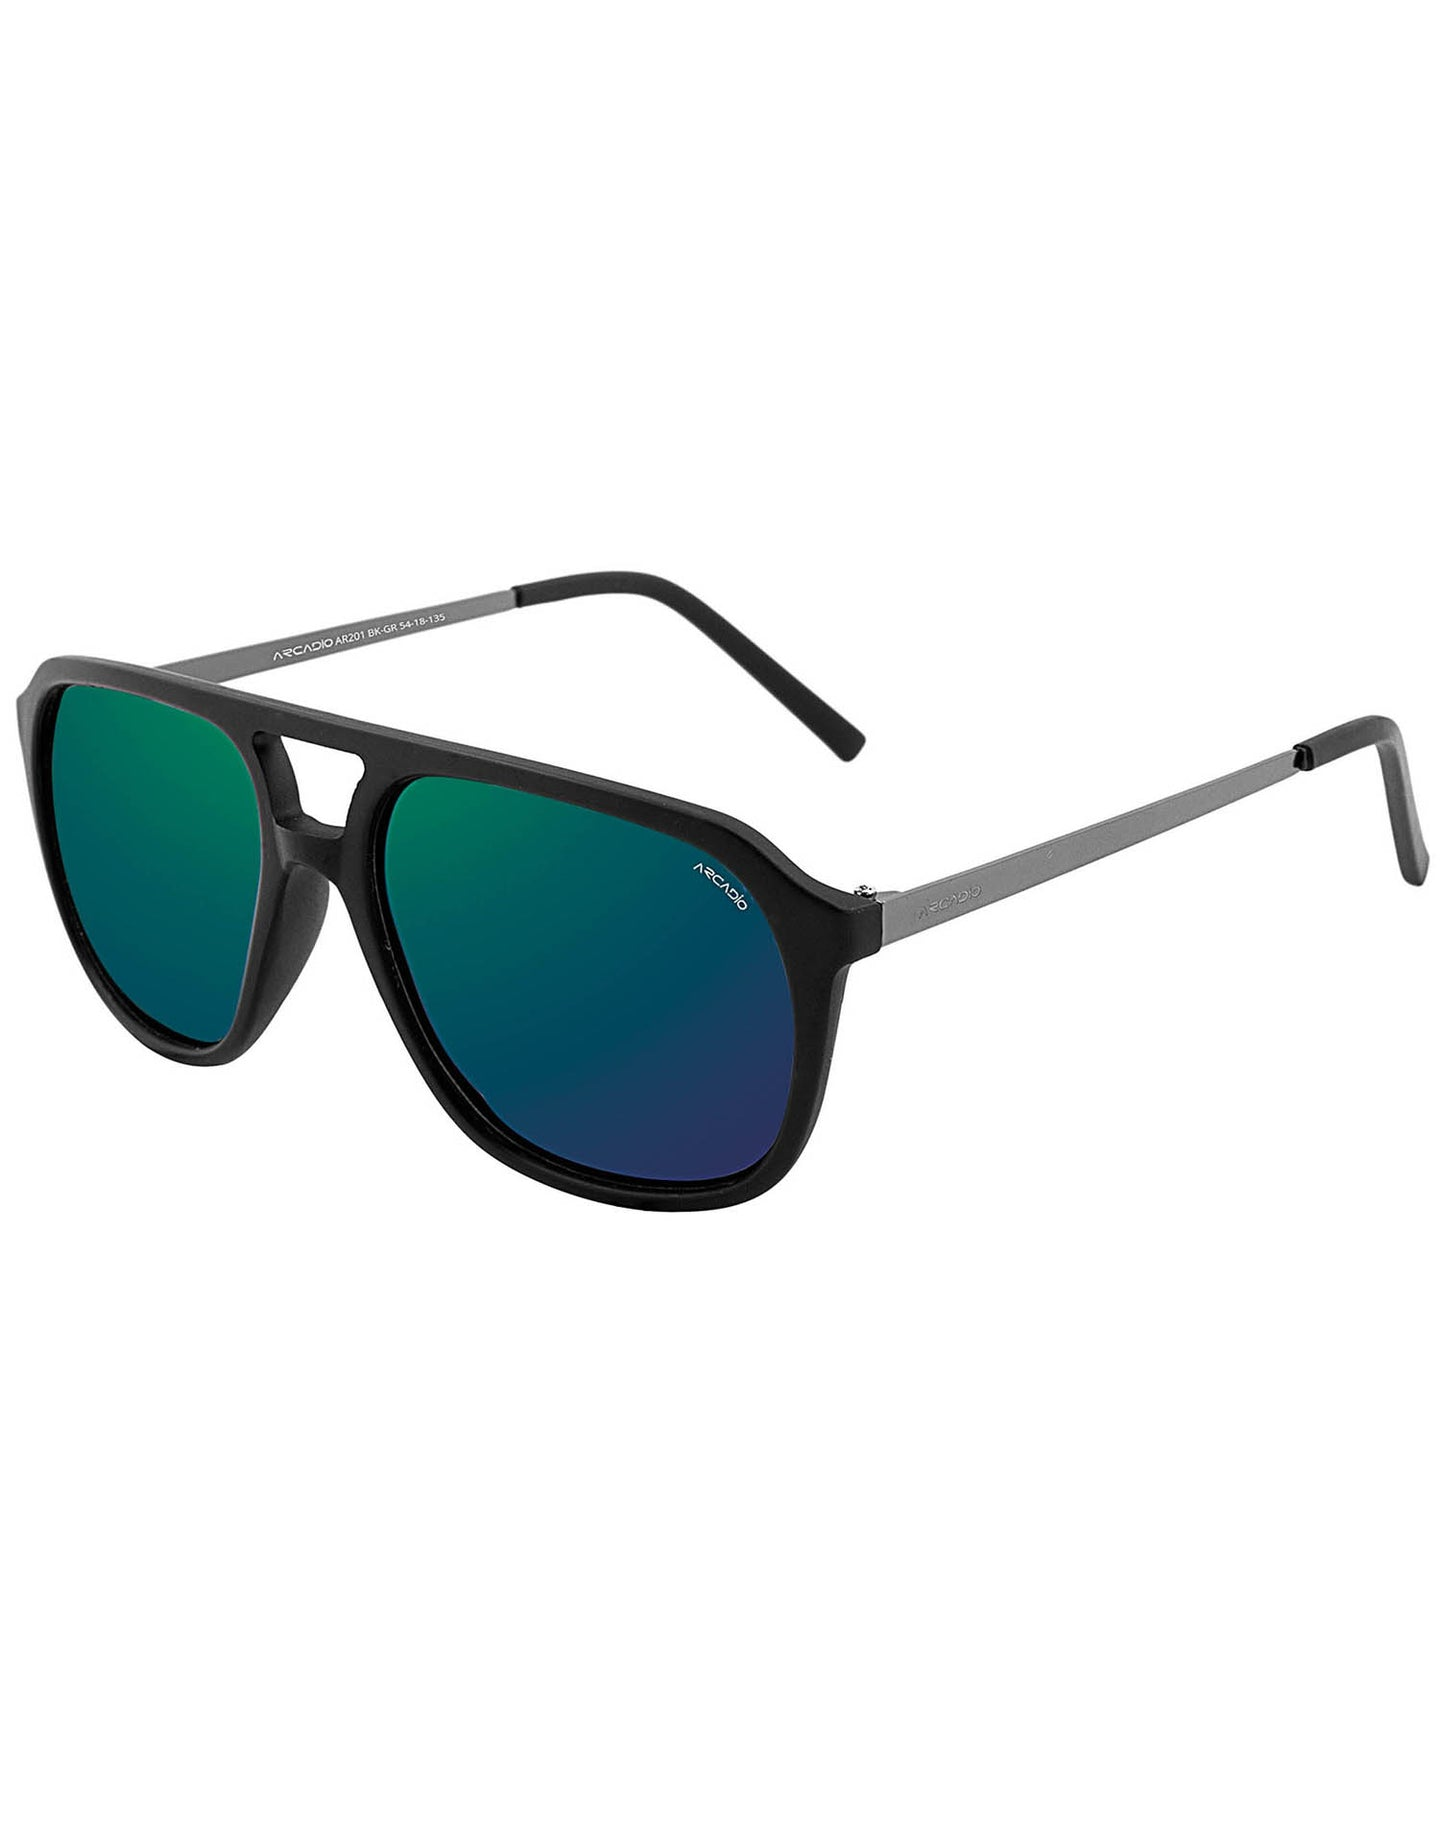 Unisex Hi-Fashion Sunglass - AR211 - ARCADIO LIFESTYLE